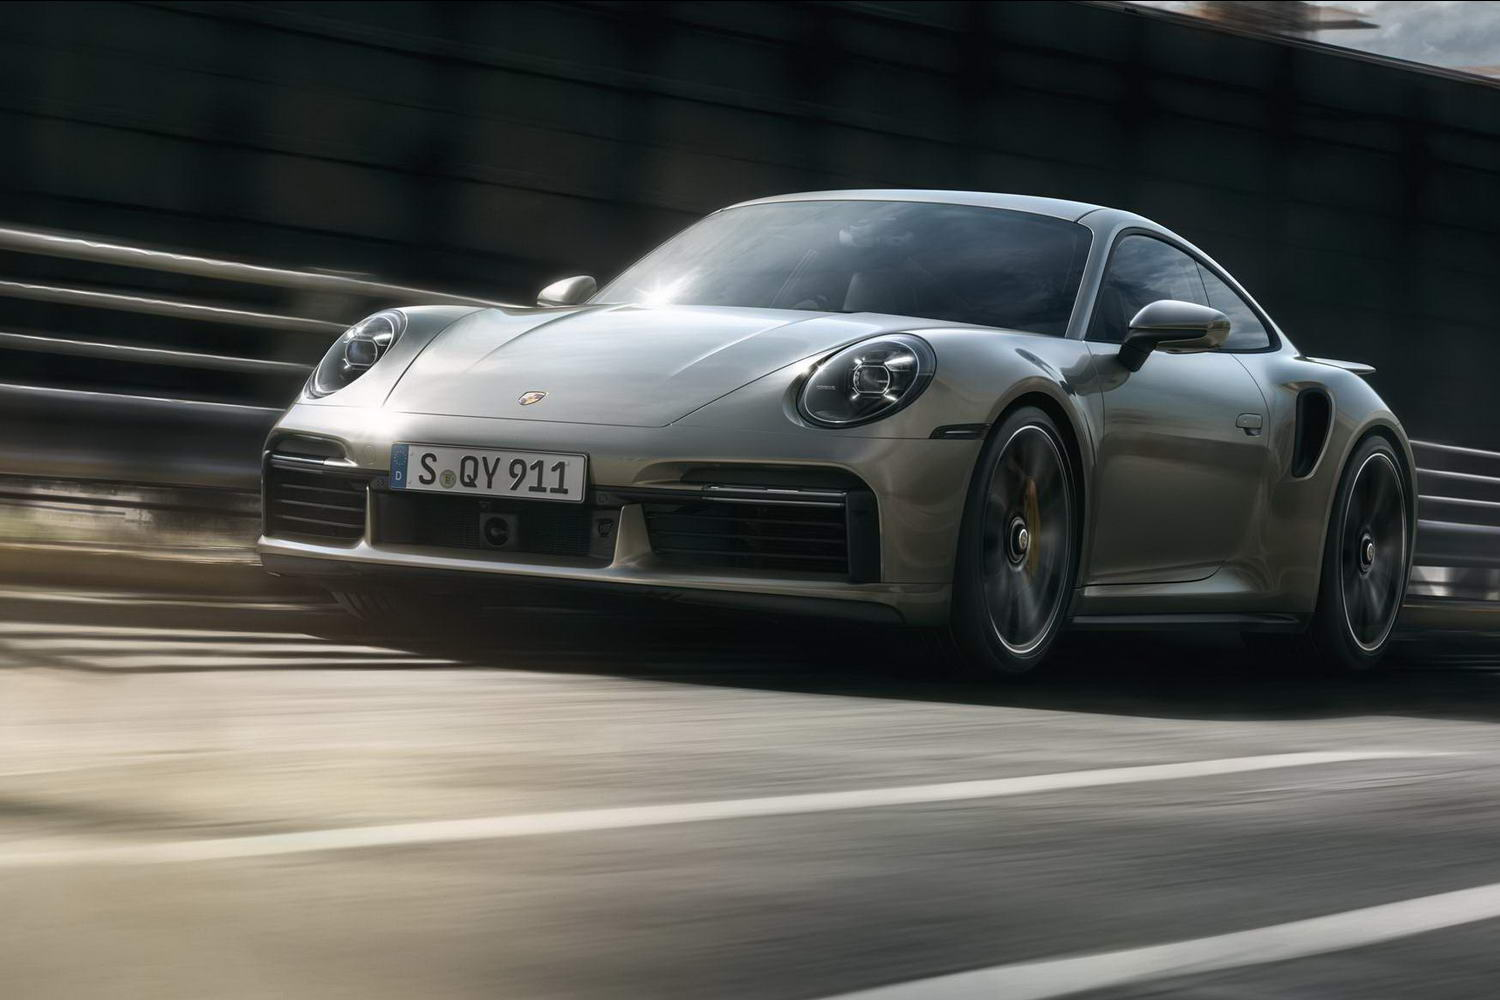 Car News | Porsche reveals aero tricks of new 911 Turbo | CompleteCar.ie